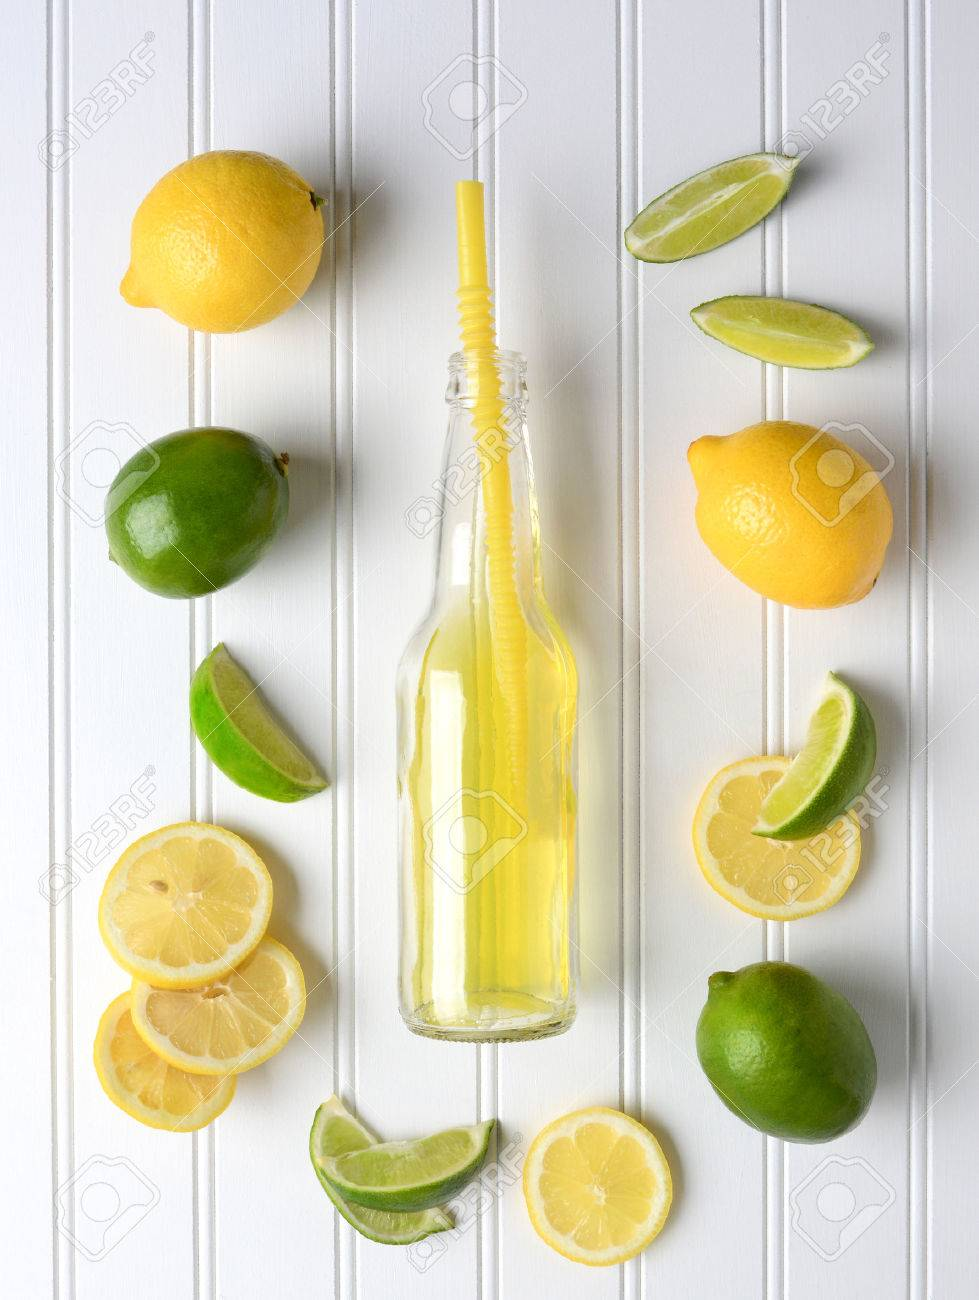 Lines and Lemons surrounding a bottle of soda on a white bead board table. High angle shot in vertical format. - 40937028